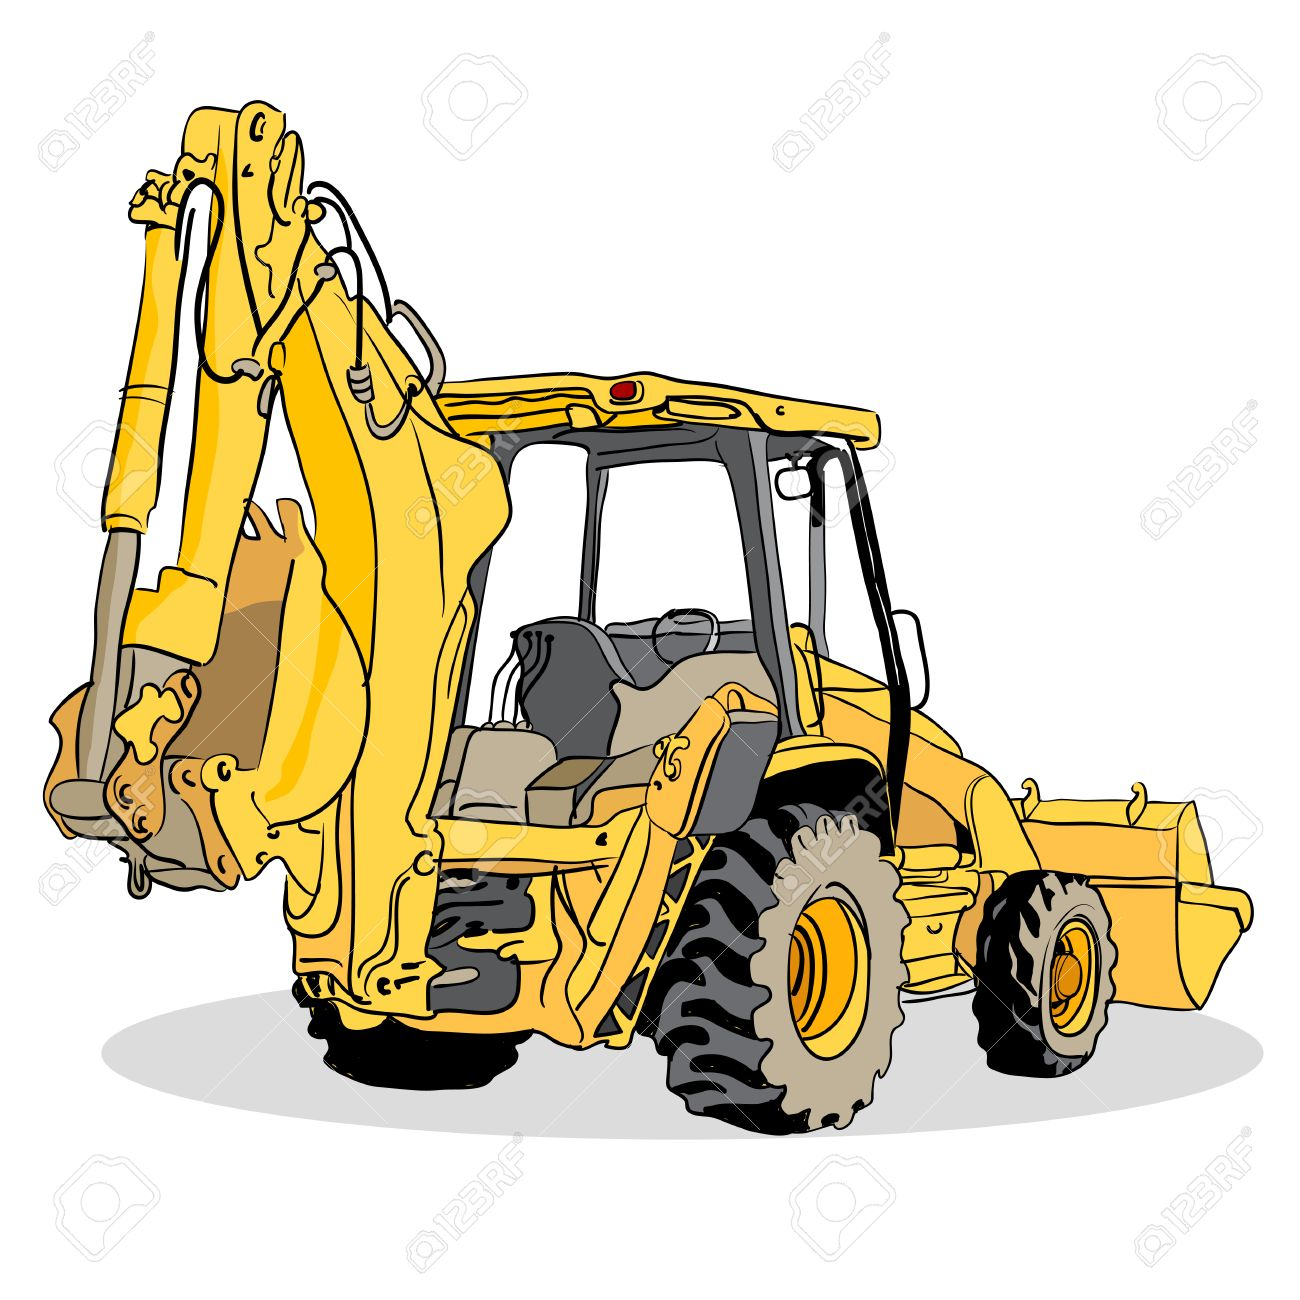 An image of a backhoe loader vehicle stock vector 29197521